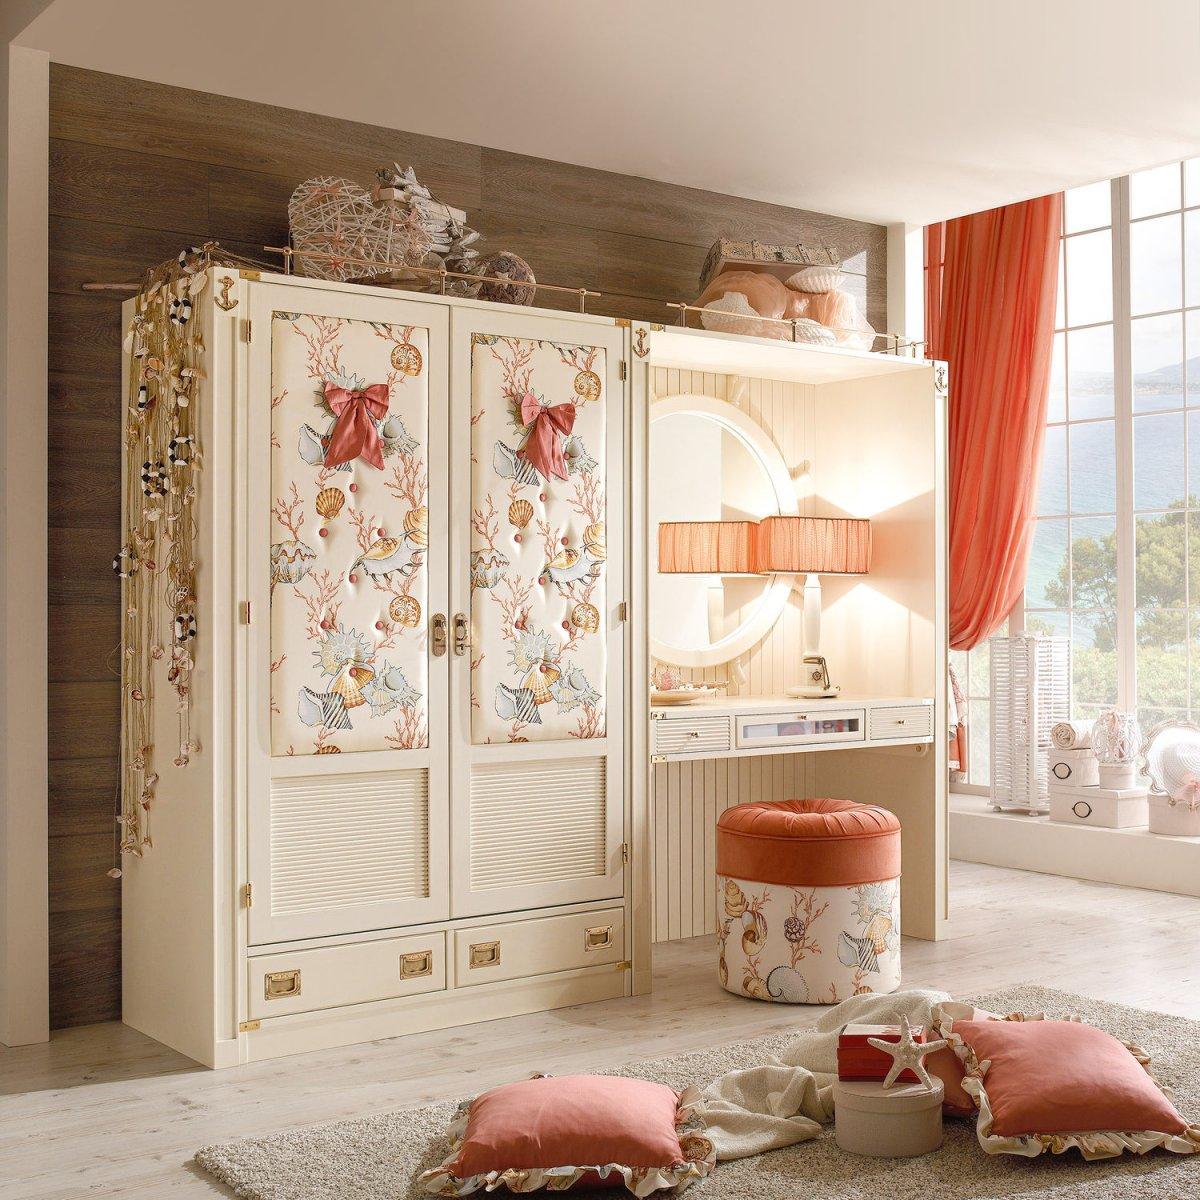 Featured Image of Bedroom Style For Girls With Dressing Room